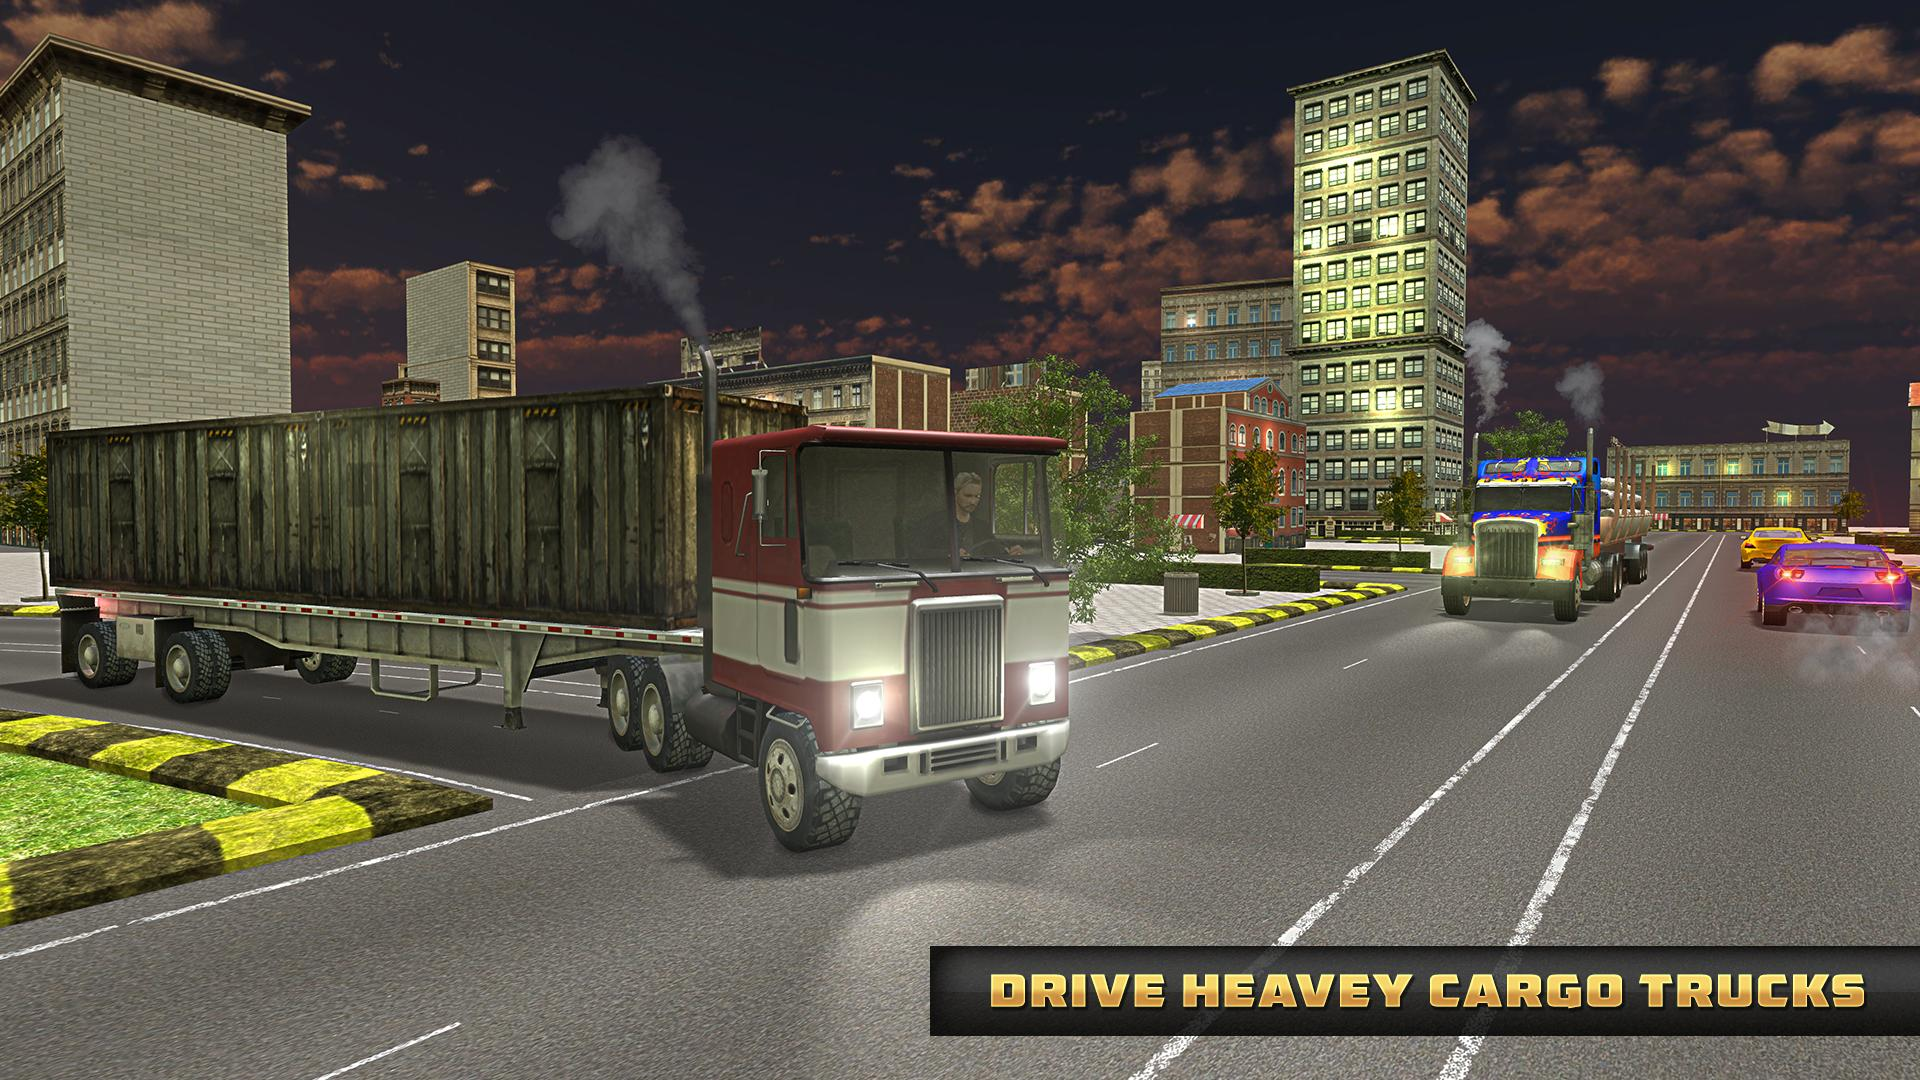 Euro Truck Driver Simulator 2019: Free Truck Games for